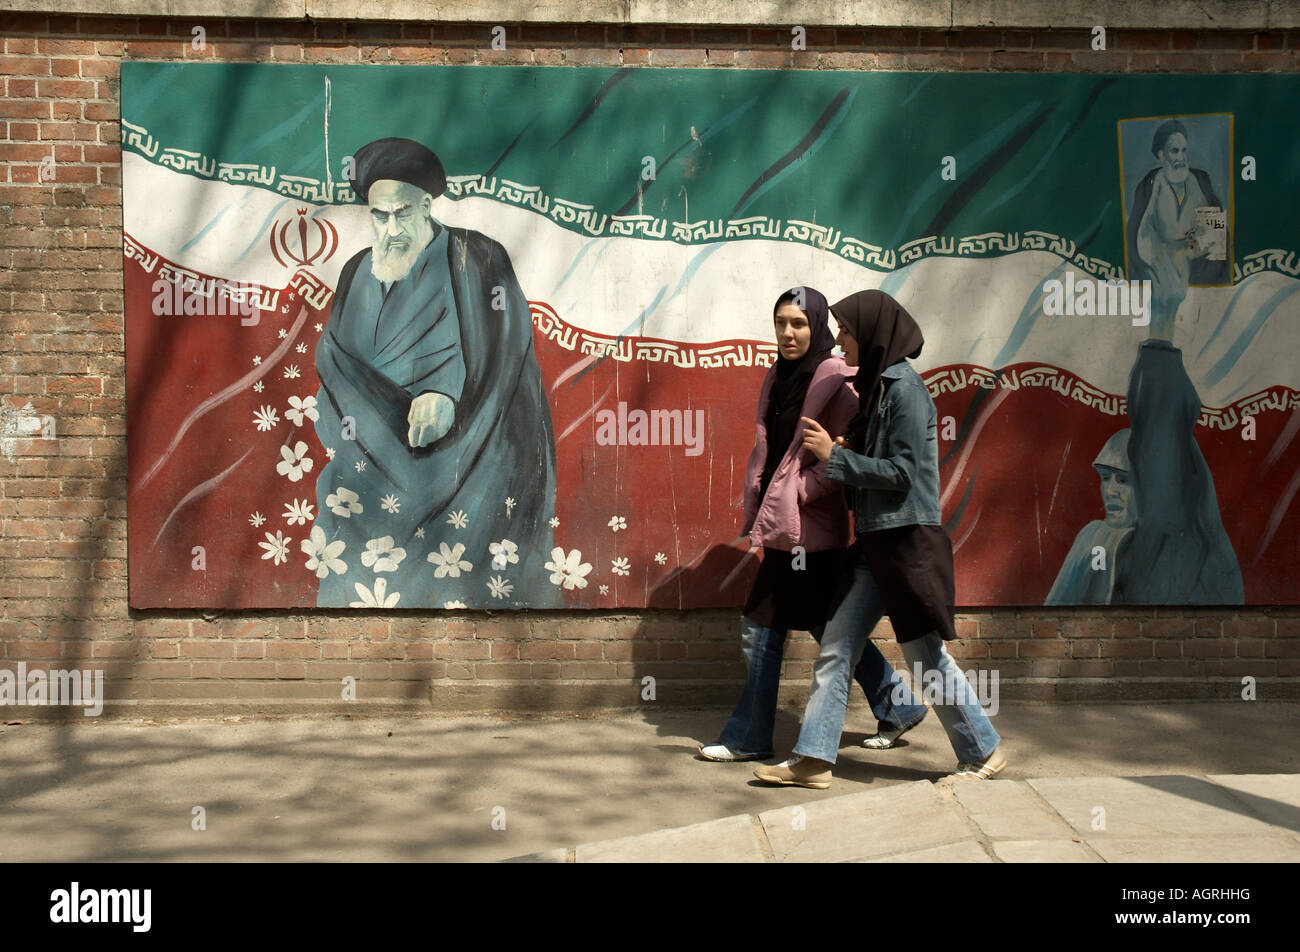 Two woman wearing Islamic uniforms walking in front of the painting of Ayatollah Khomeini and the Iranian flag on - Stock Image